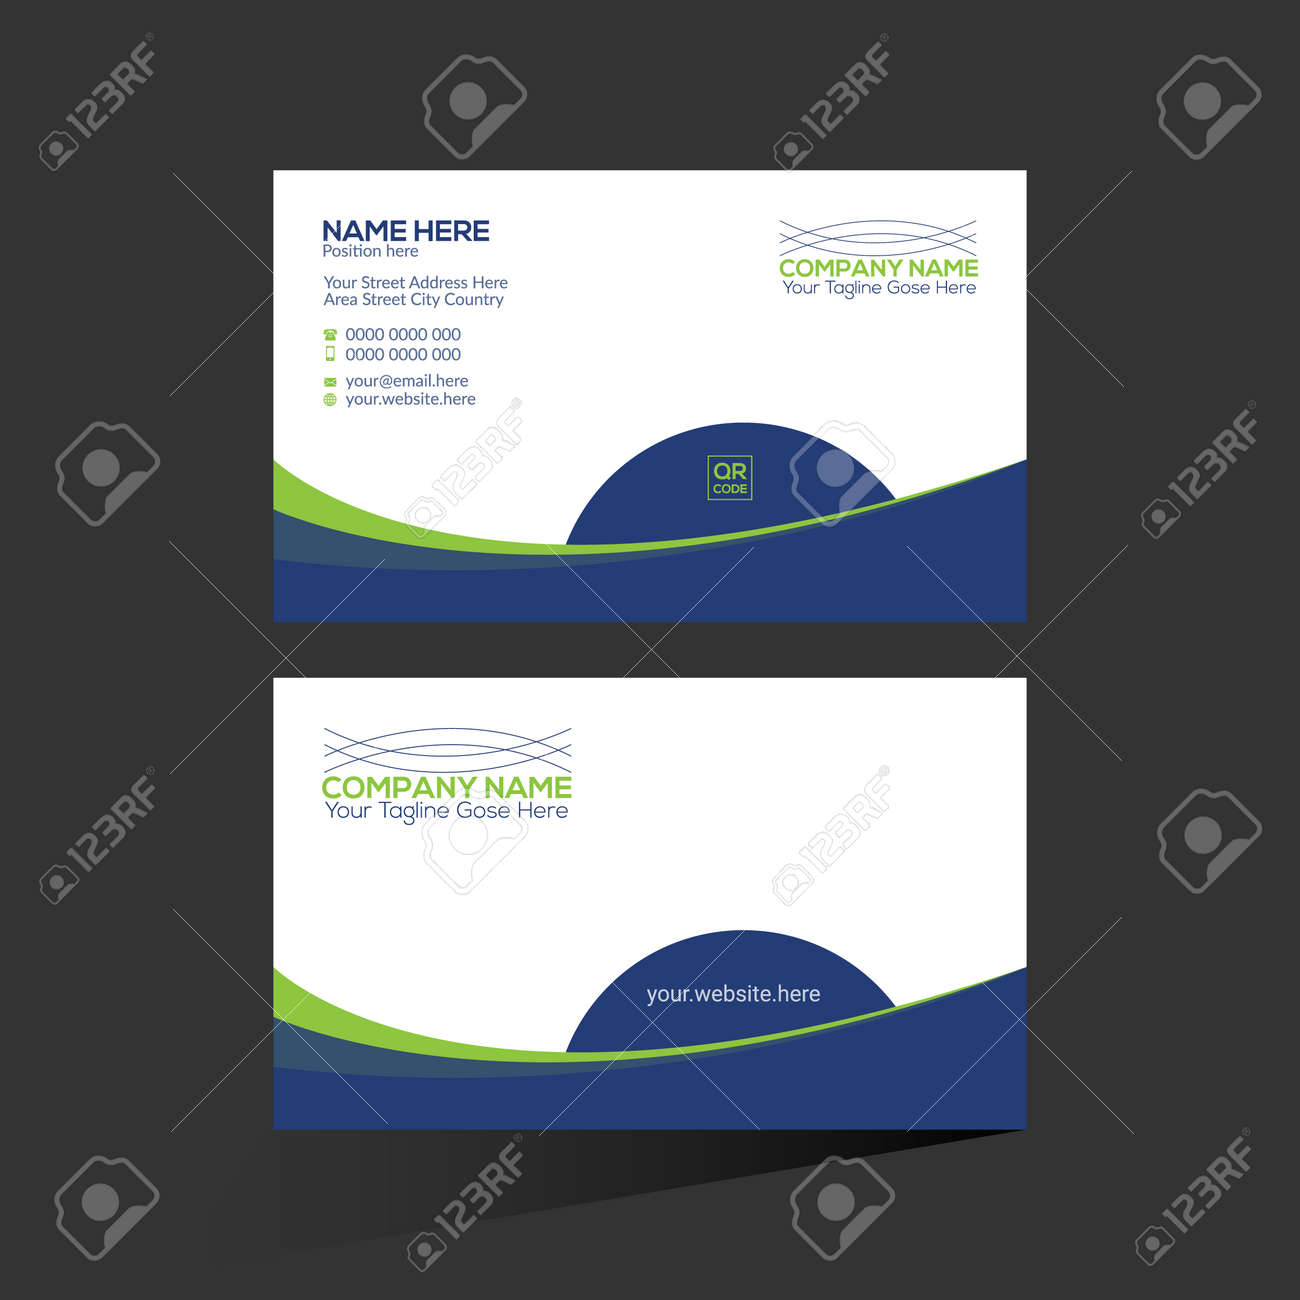 blue and green colored vector business card design for any company use - 172189131